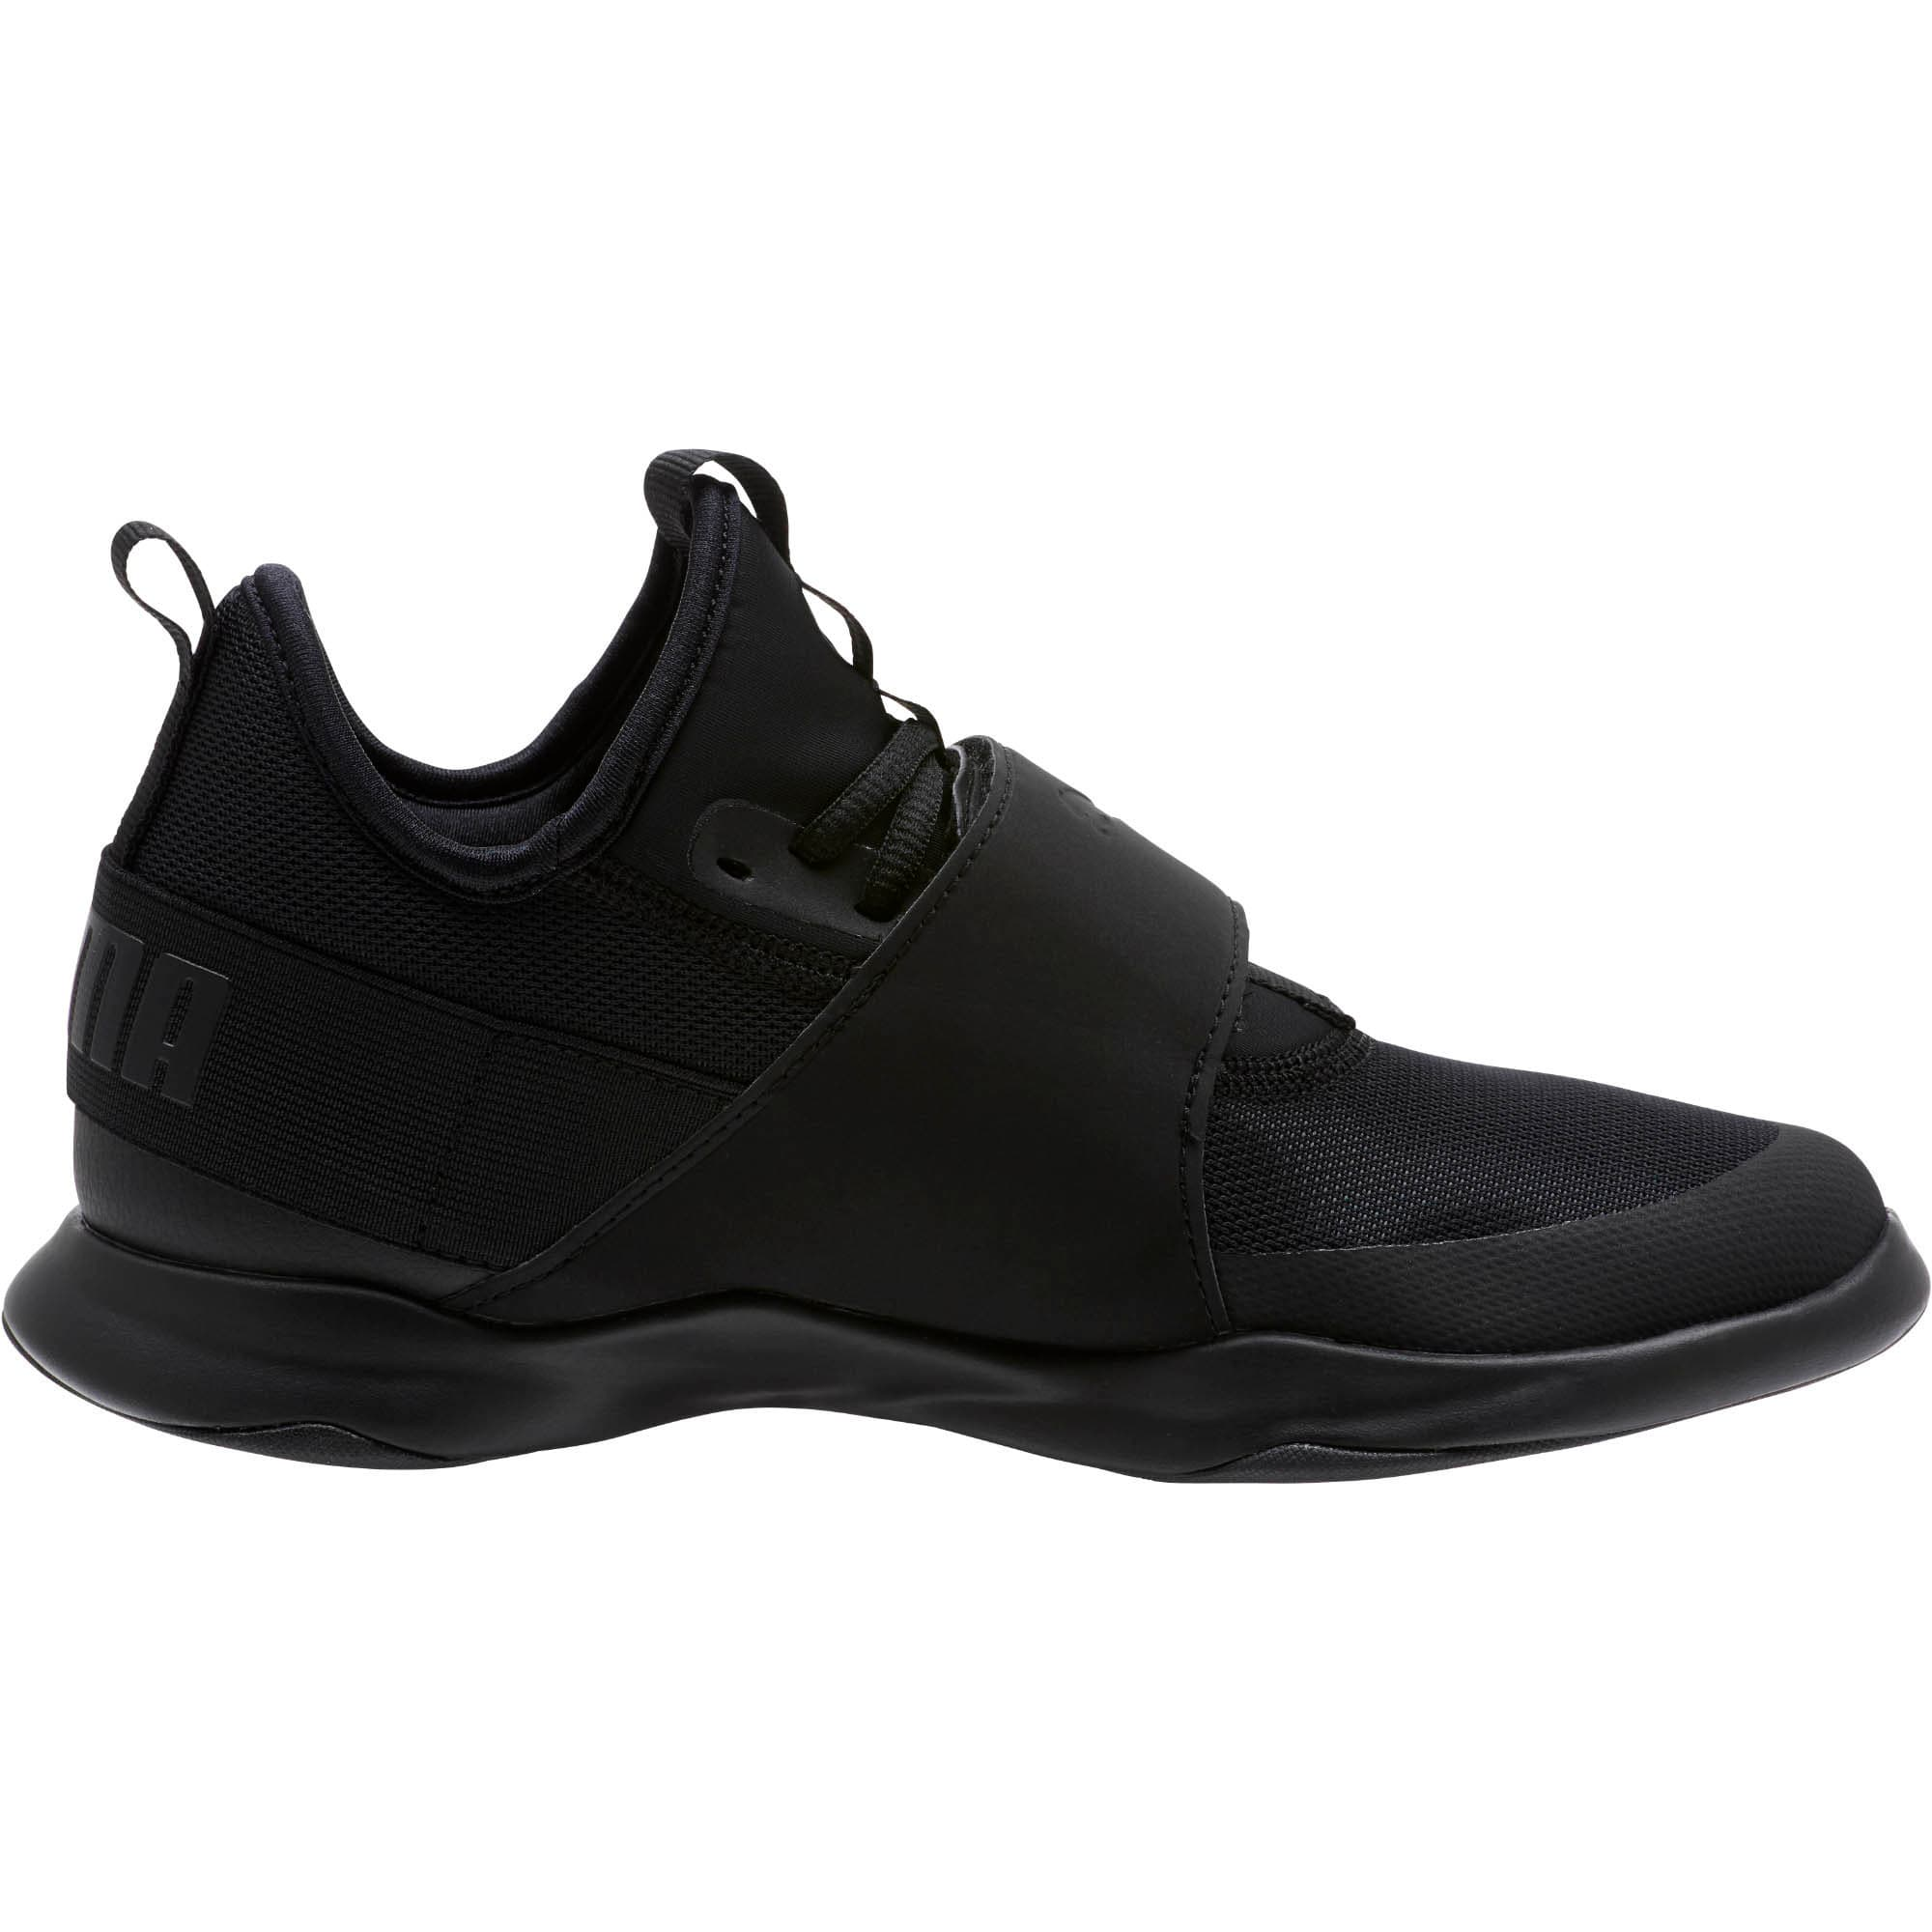 Thumbnail 3 of Dare Trainer Women's Trainers, Puma Black-Puma Black, medium